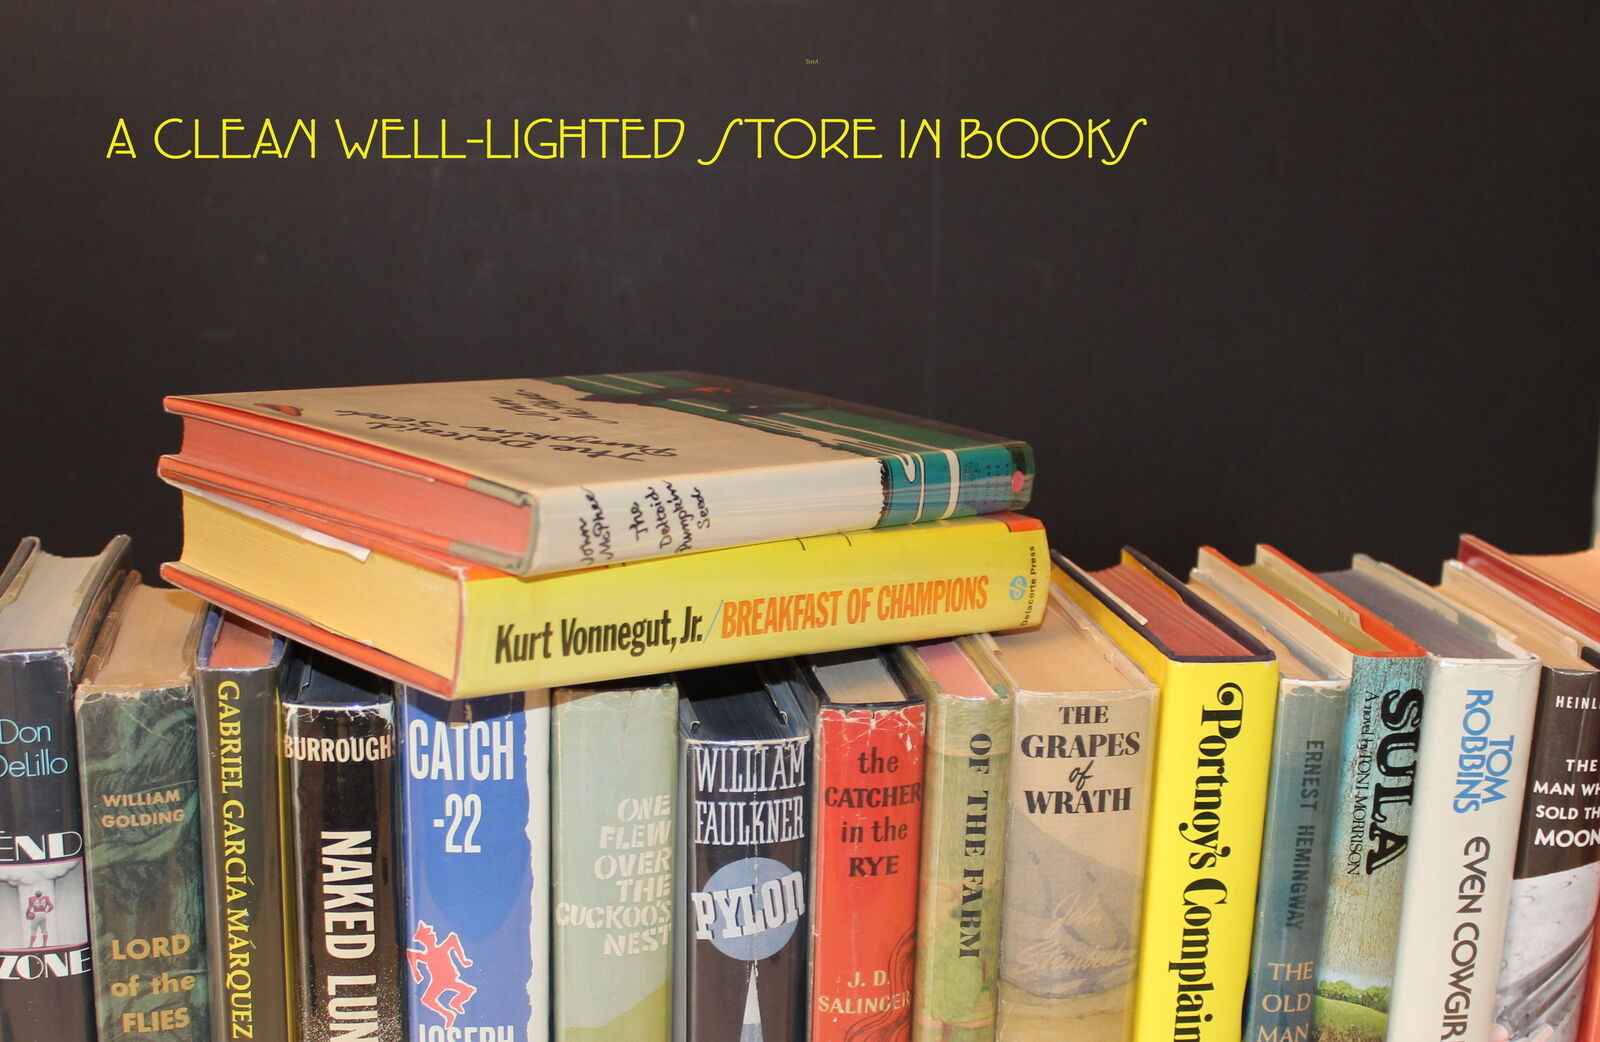 A Clean Well-Lighted Store in Books